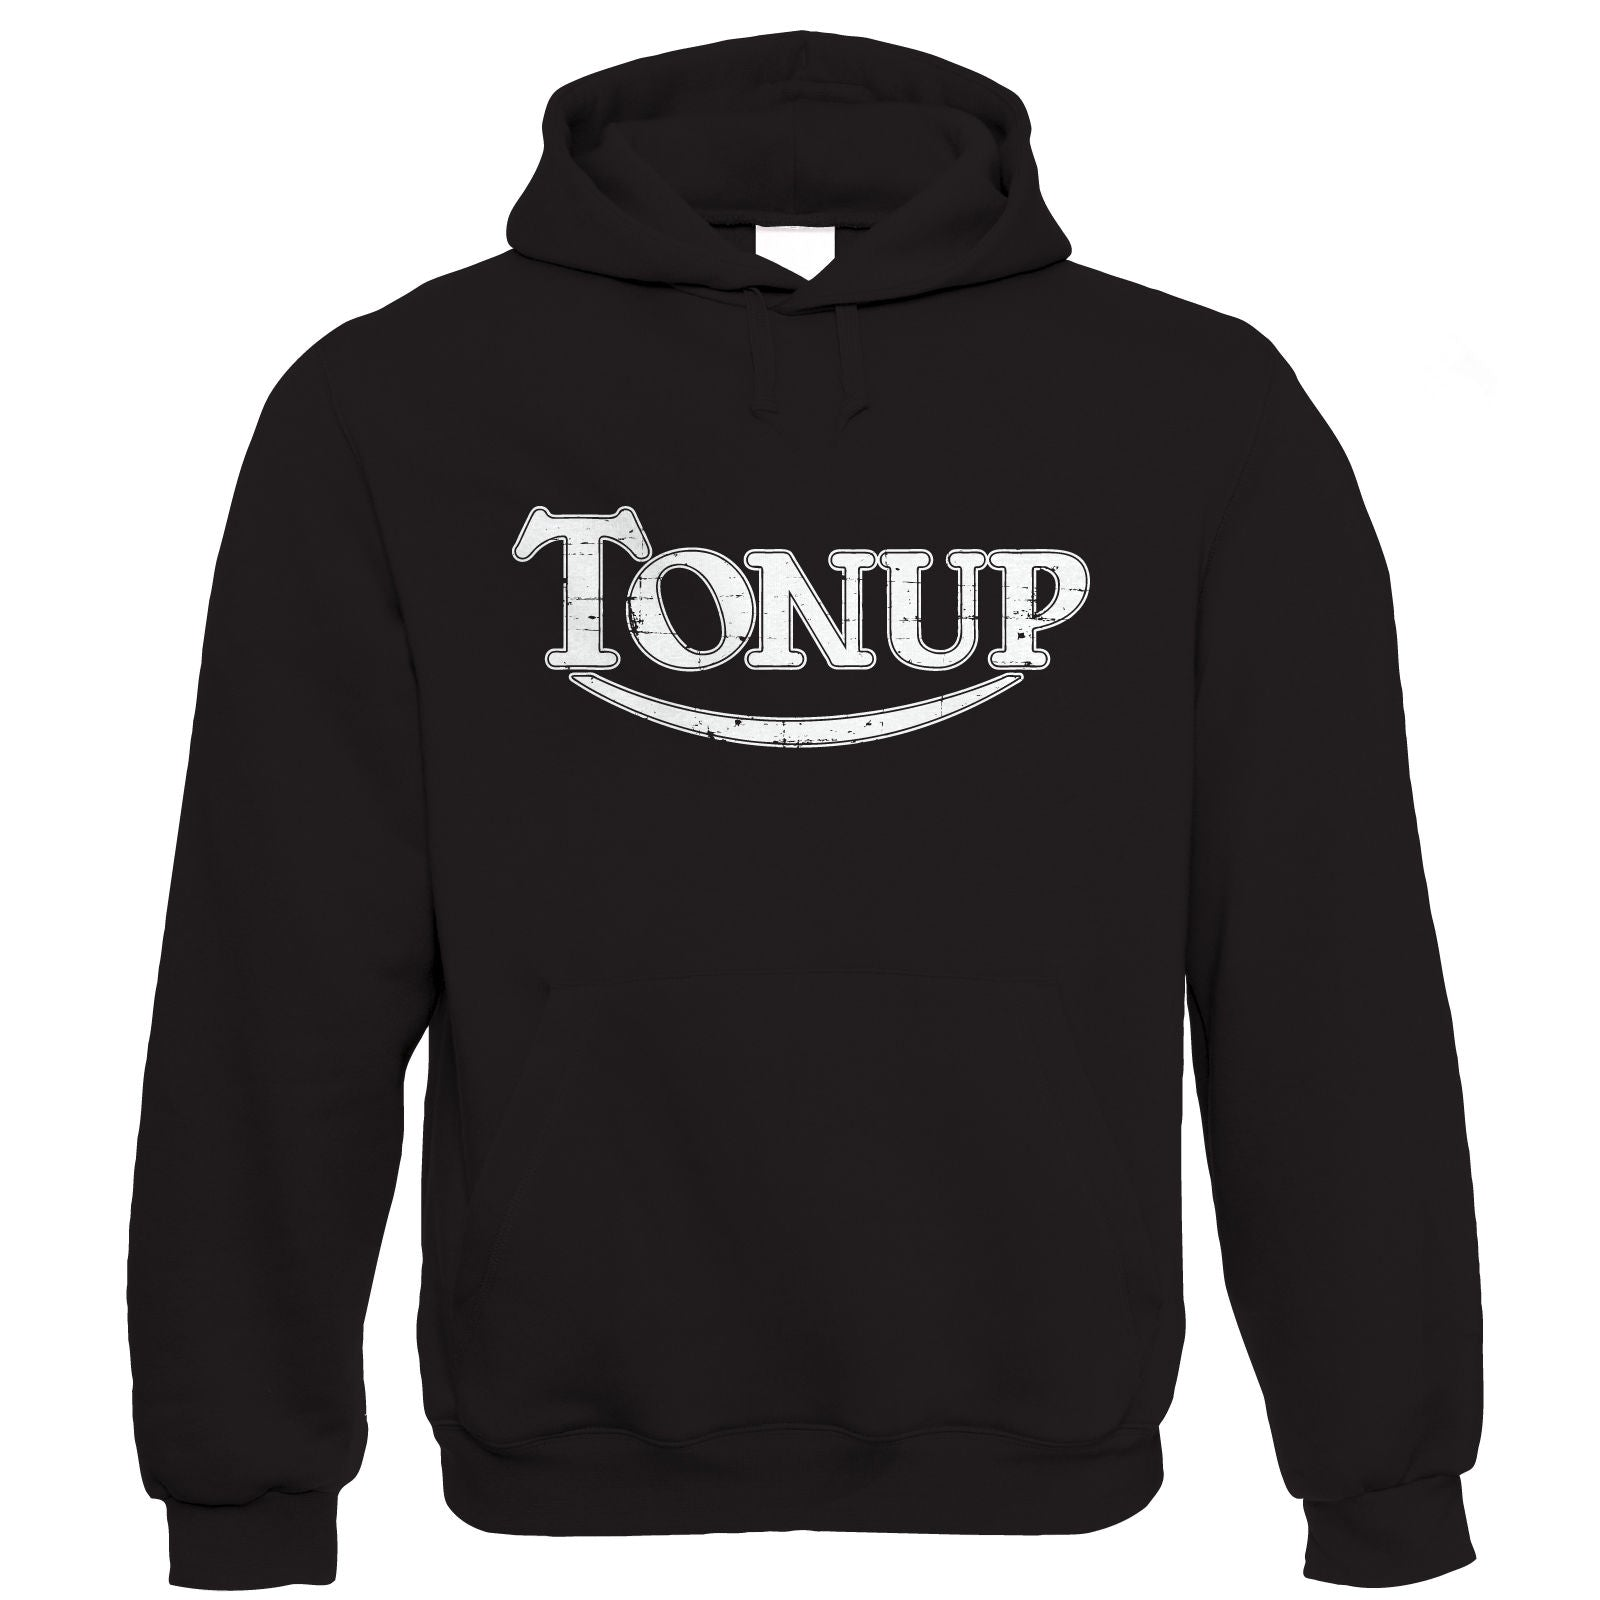 Ton Up Cafe Racer, Mens Funny Biker T Shirt | Motorbike Enthusiast Vintage Motorcycle Club Chopper Cafe Racer Superbike Gentleman Biker | Cool Birthday Christmas Gift Present Him Dad Husband Son